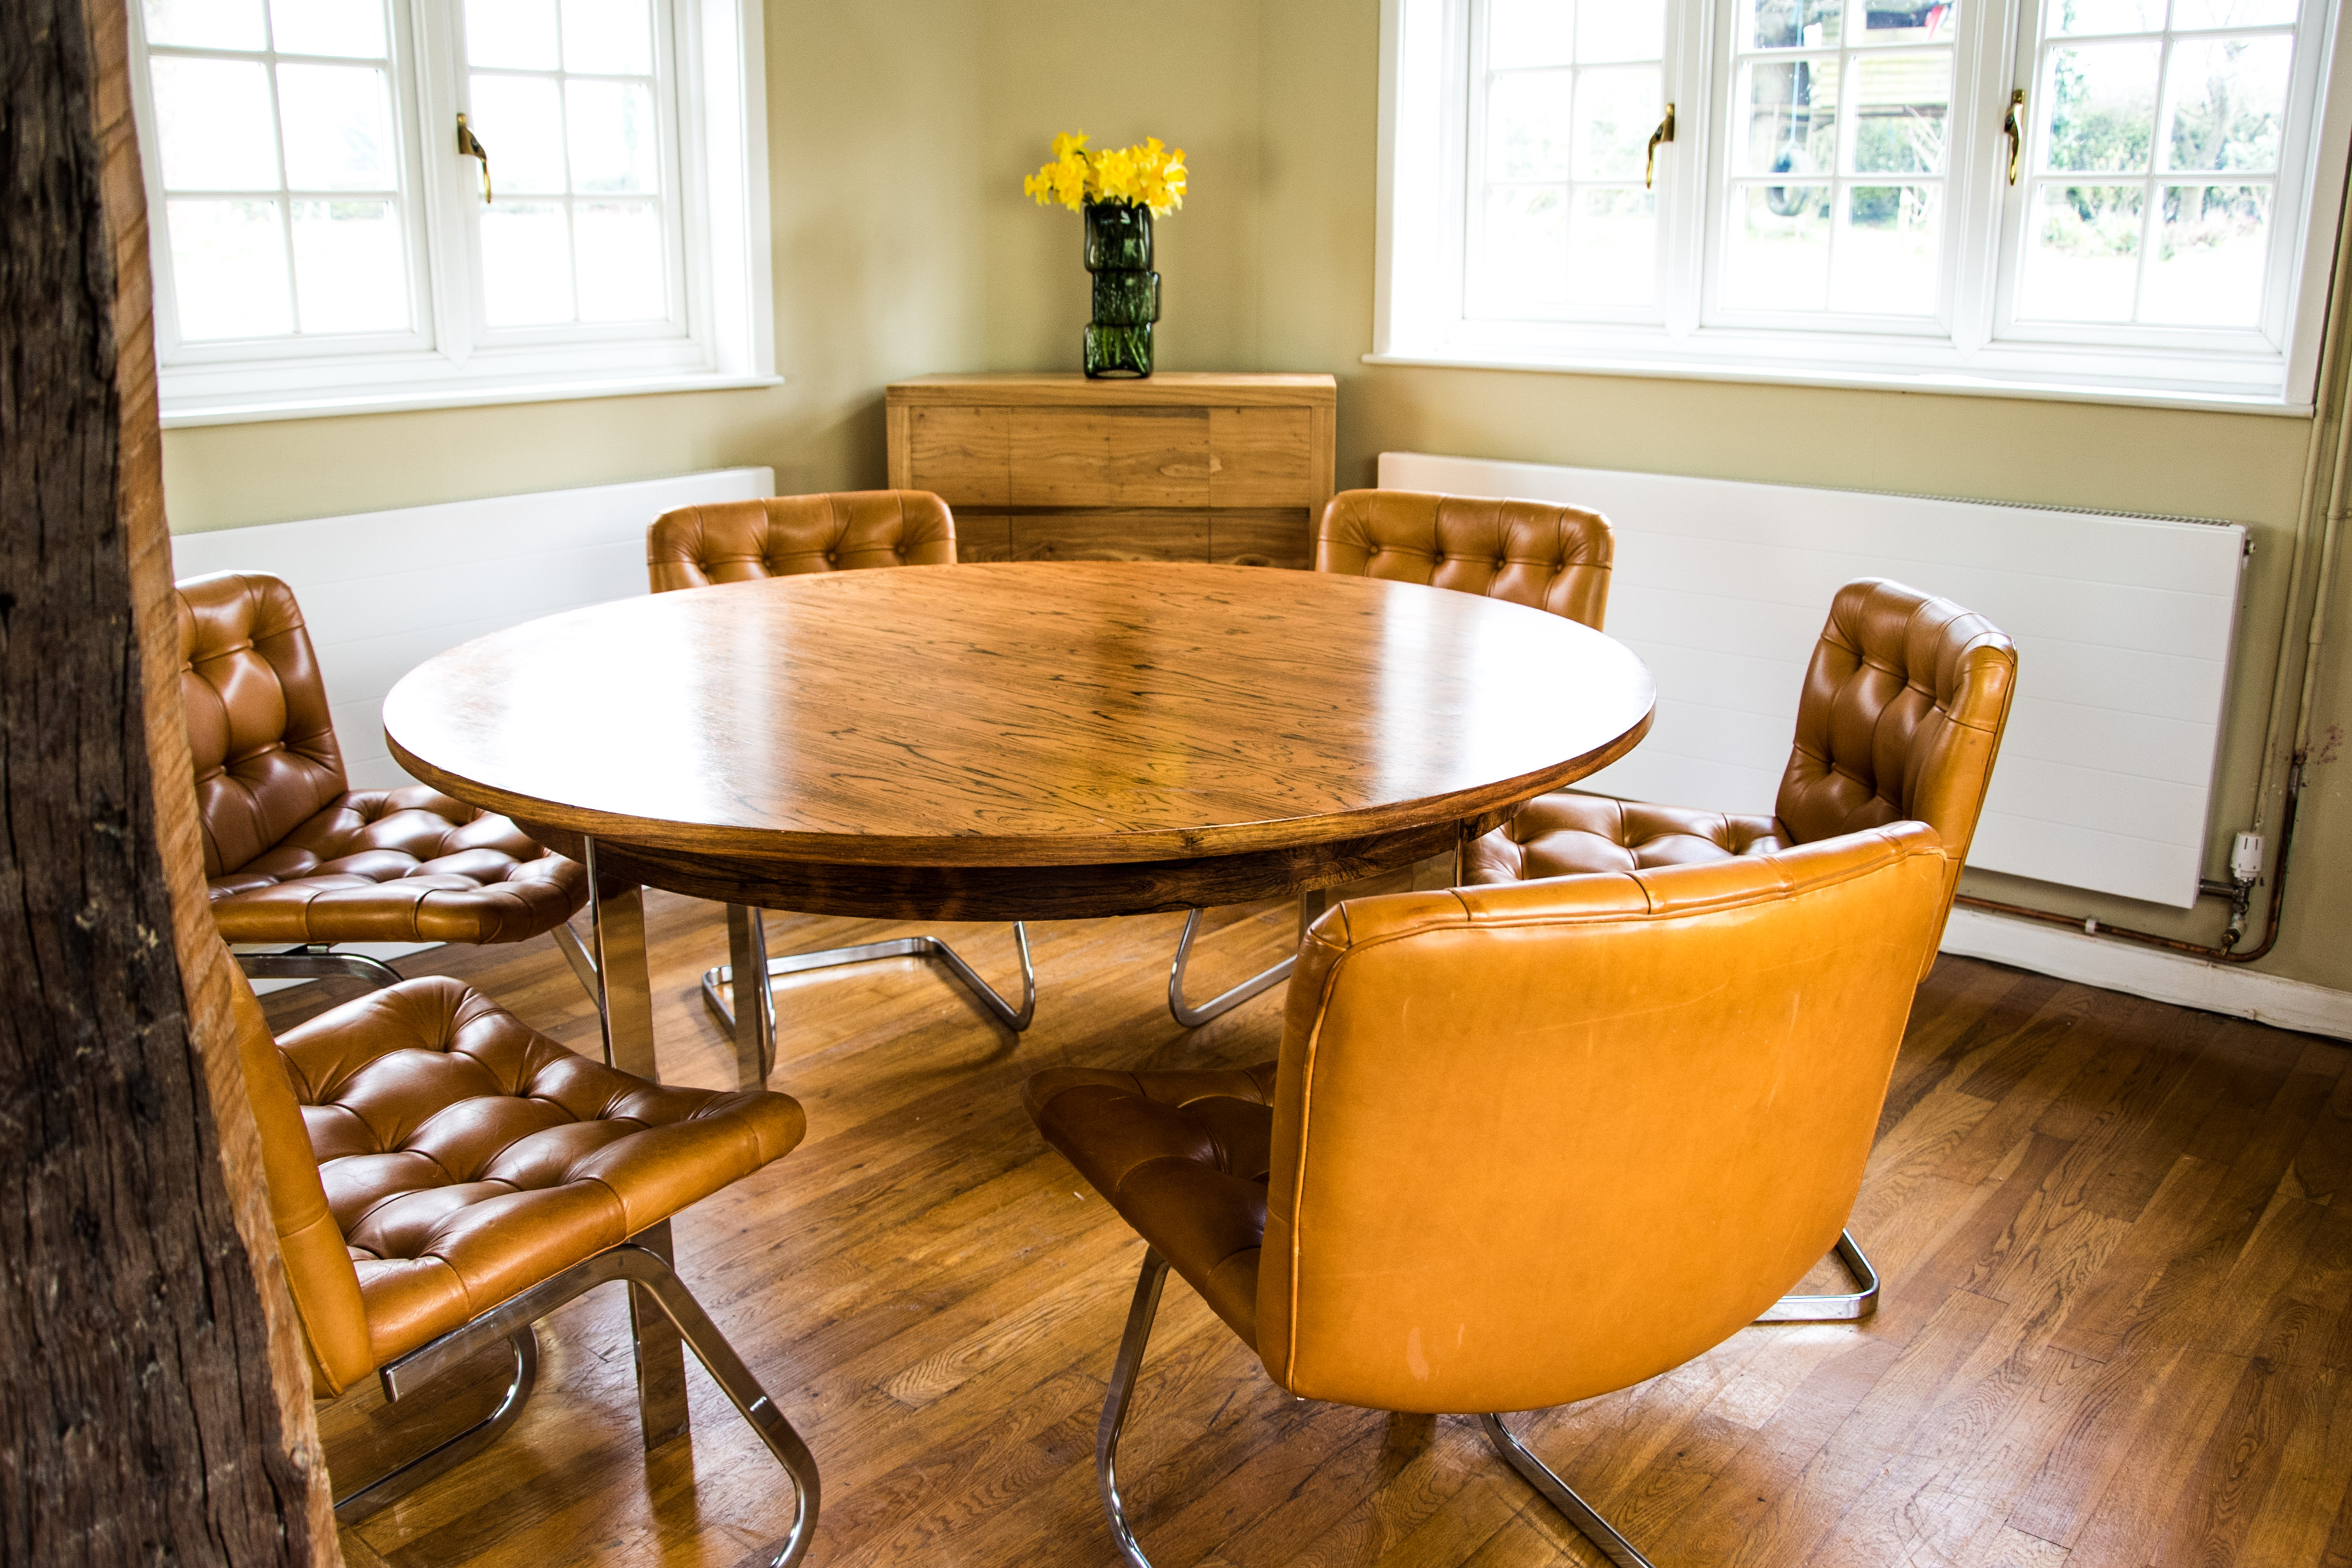 Italian Tan Leather Dining Chairs at table 2